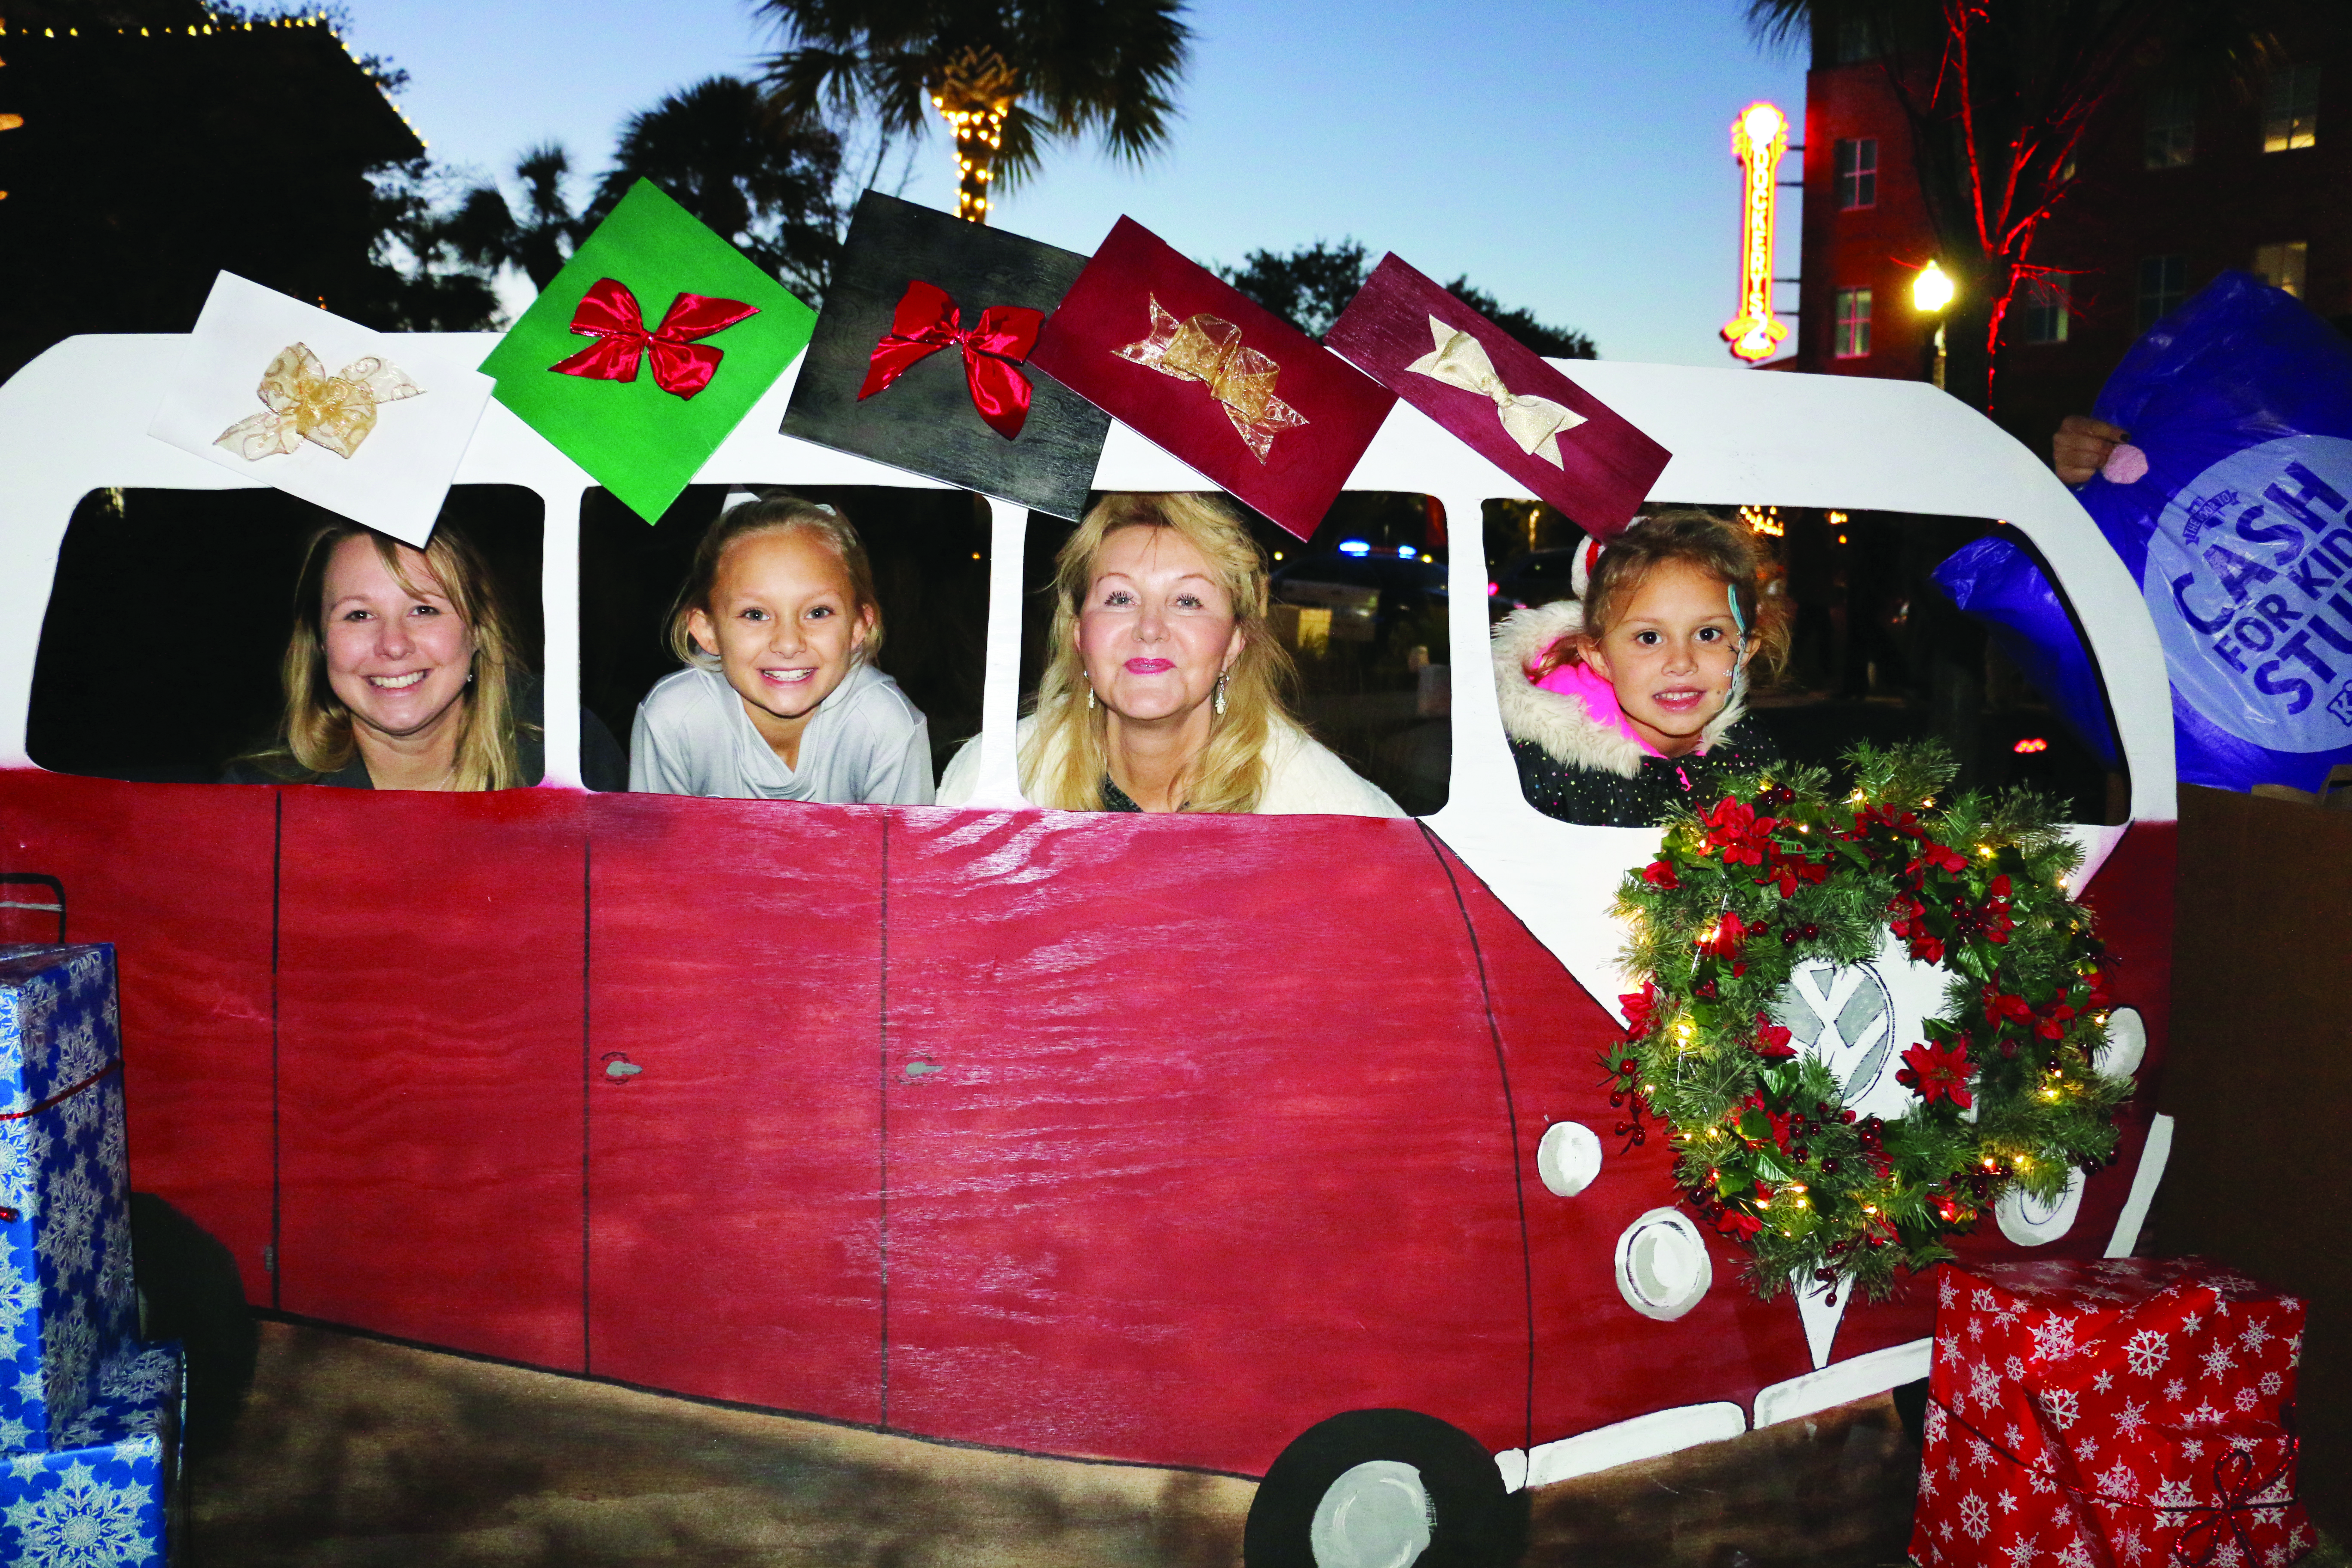 Aubry, Abigail Mae, Laurie, and Leyton hop on the holiday VW Bus.